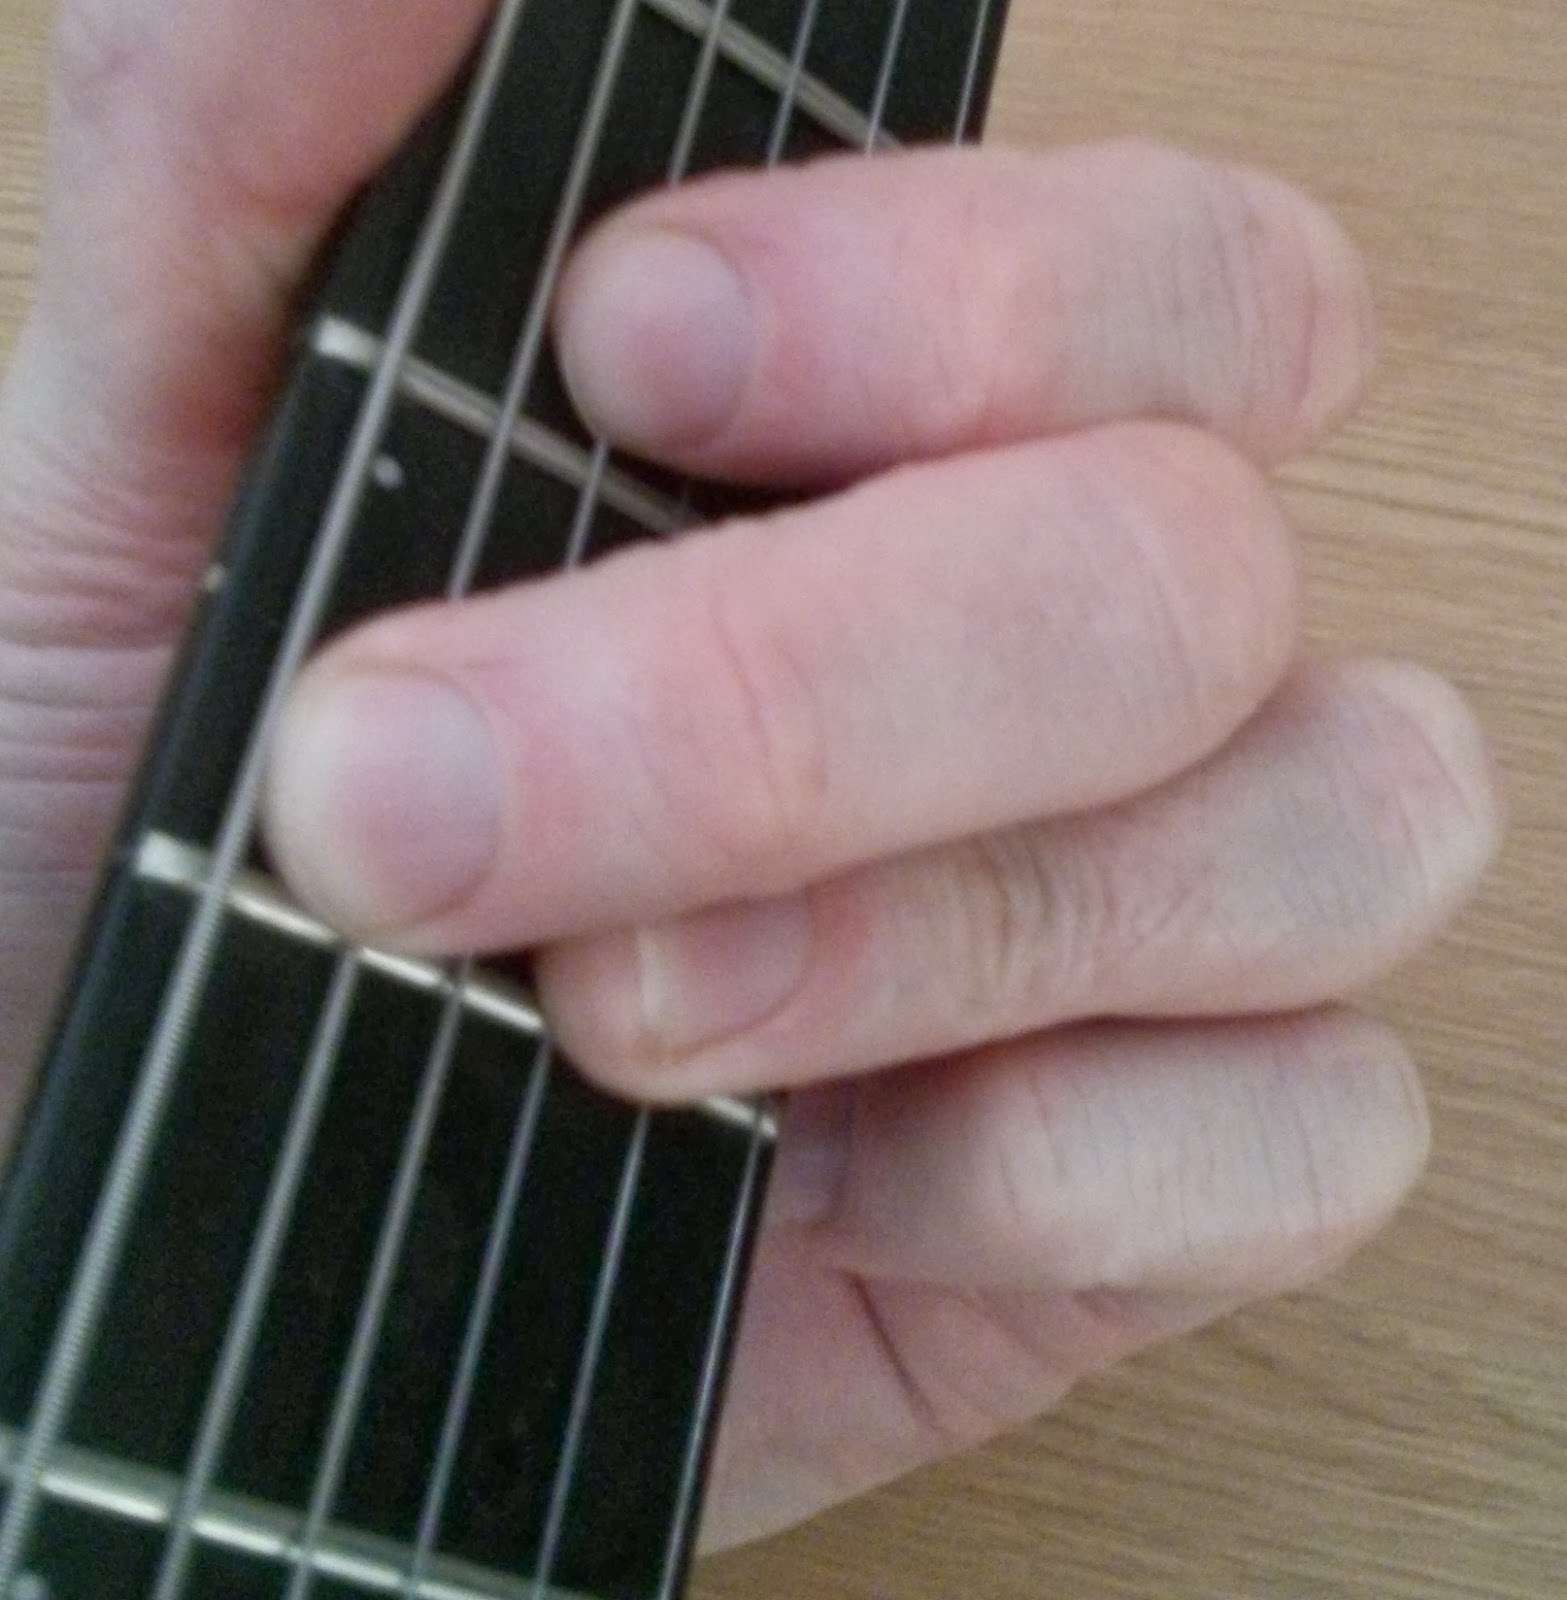 A new guitar chord every day c9 guitar chord c9 guitar chord hexwebz Choice Image